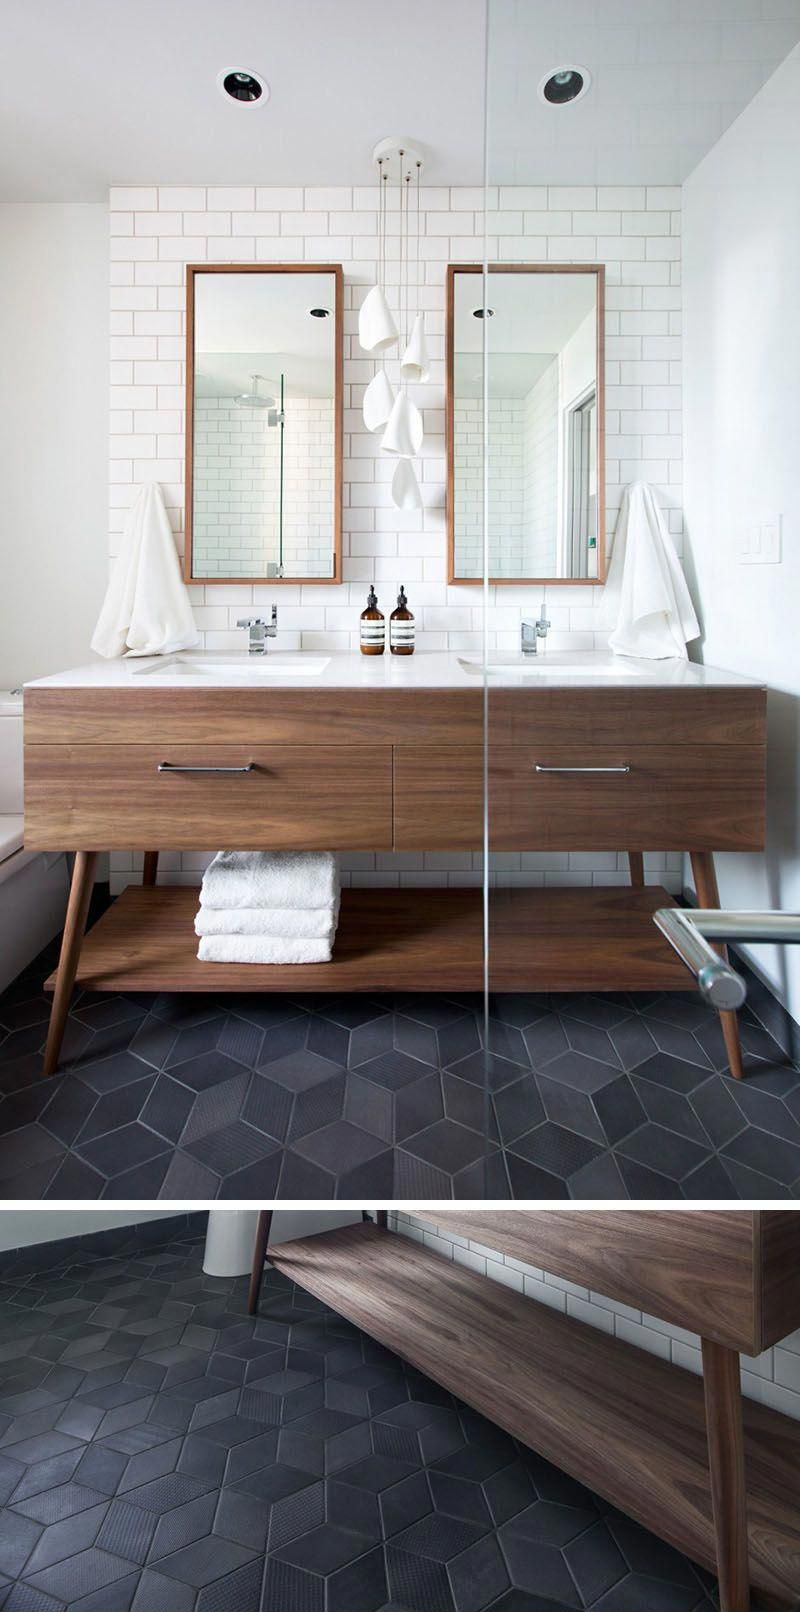 8 Examples Of Tile Flooring With Geometric Patterns Dark Textured Diamond Tiles Make Up Classic Bathroom Mid Century Modern Bathroom Modern Bathroom Design